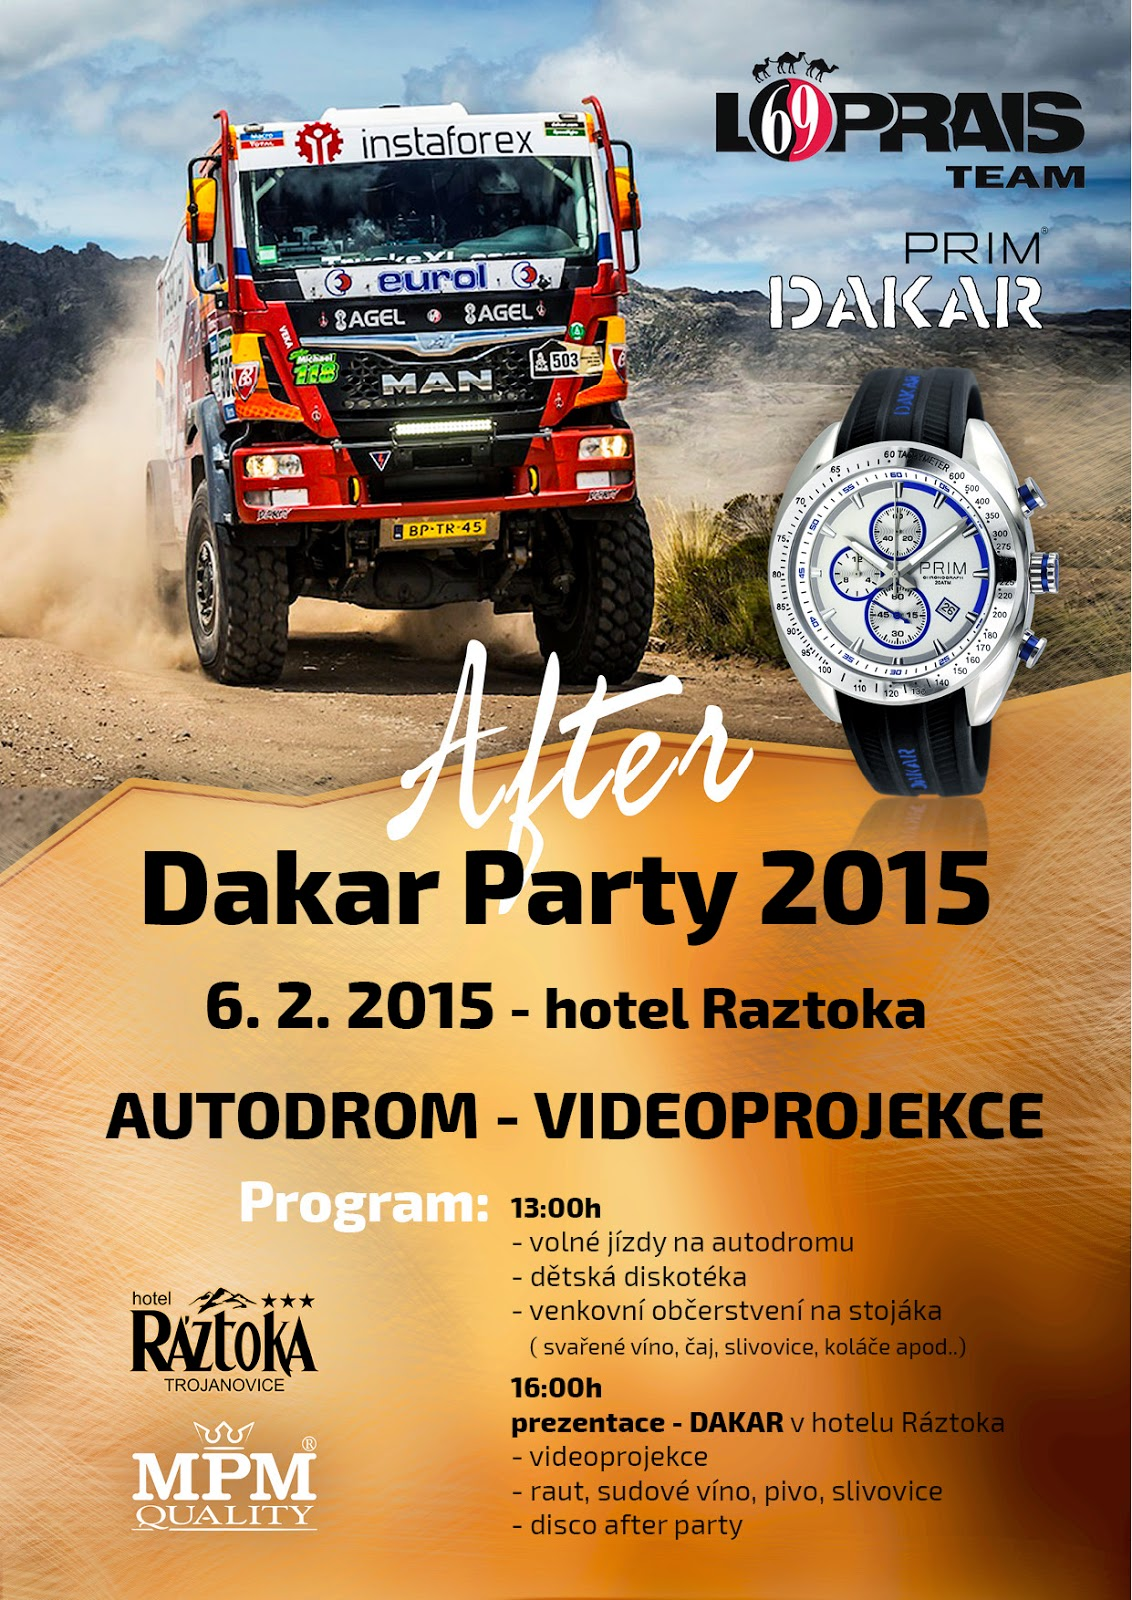 After Dakar Párty 2015